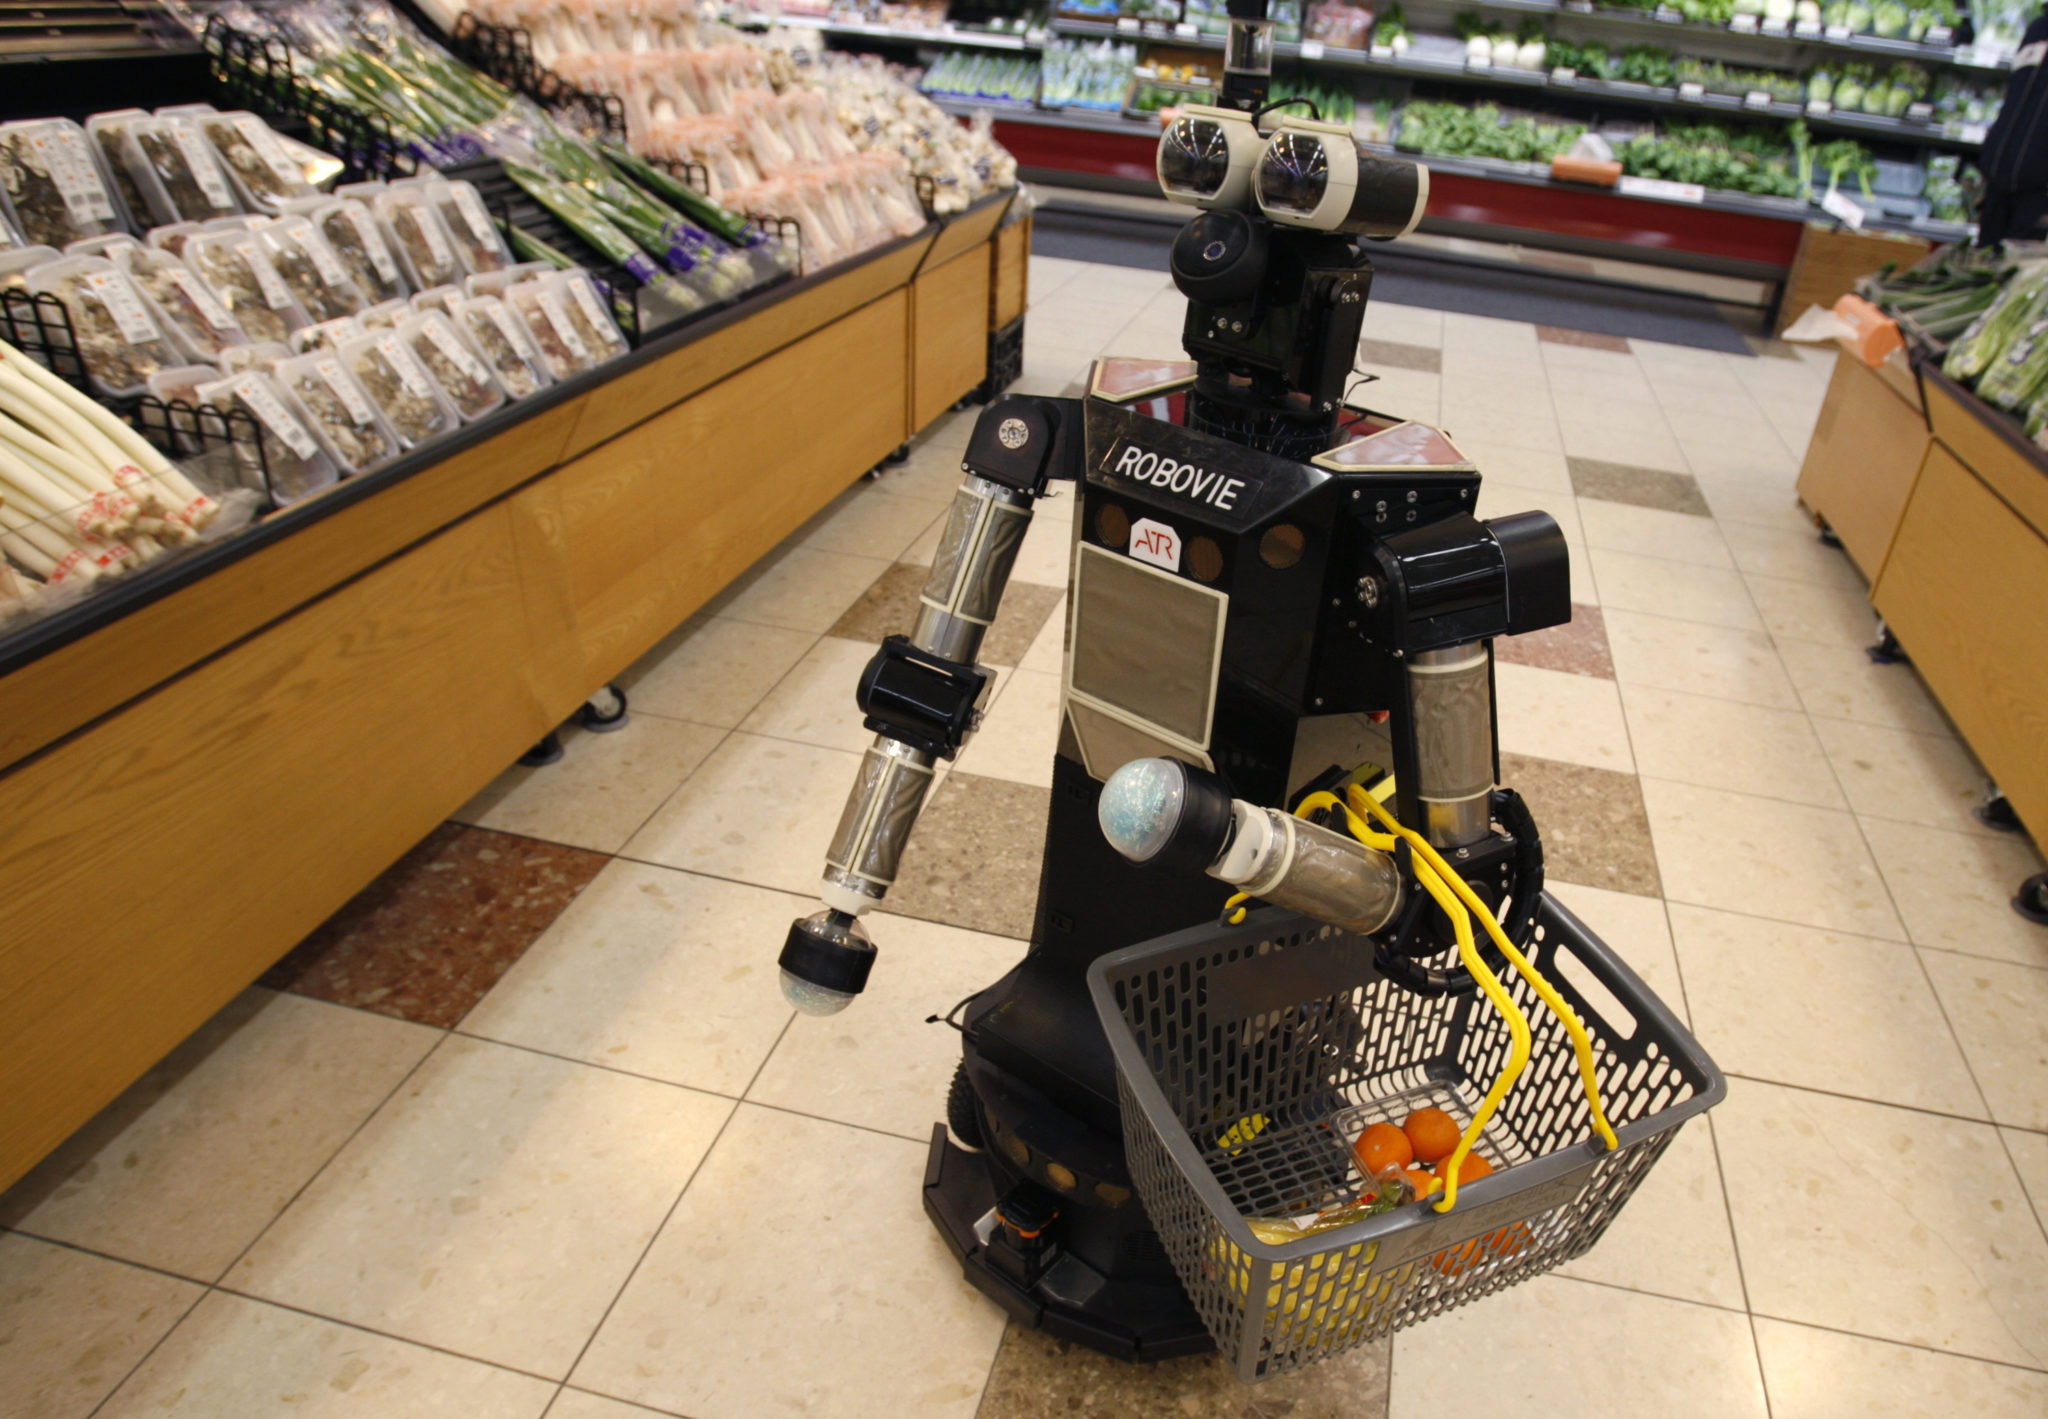 Robot picking up groceries